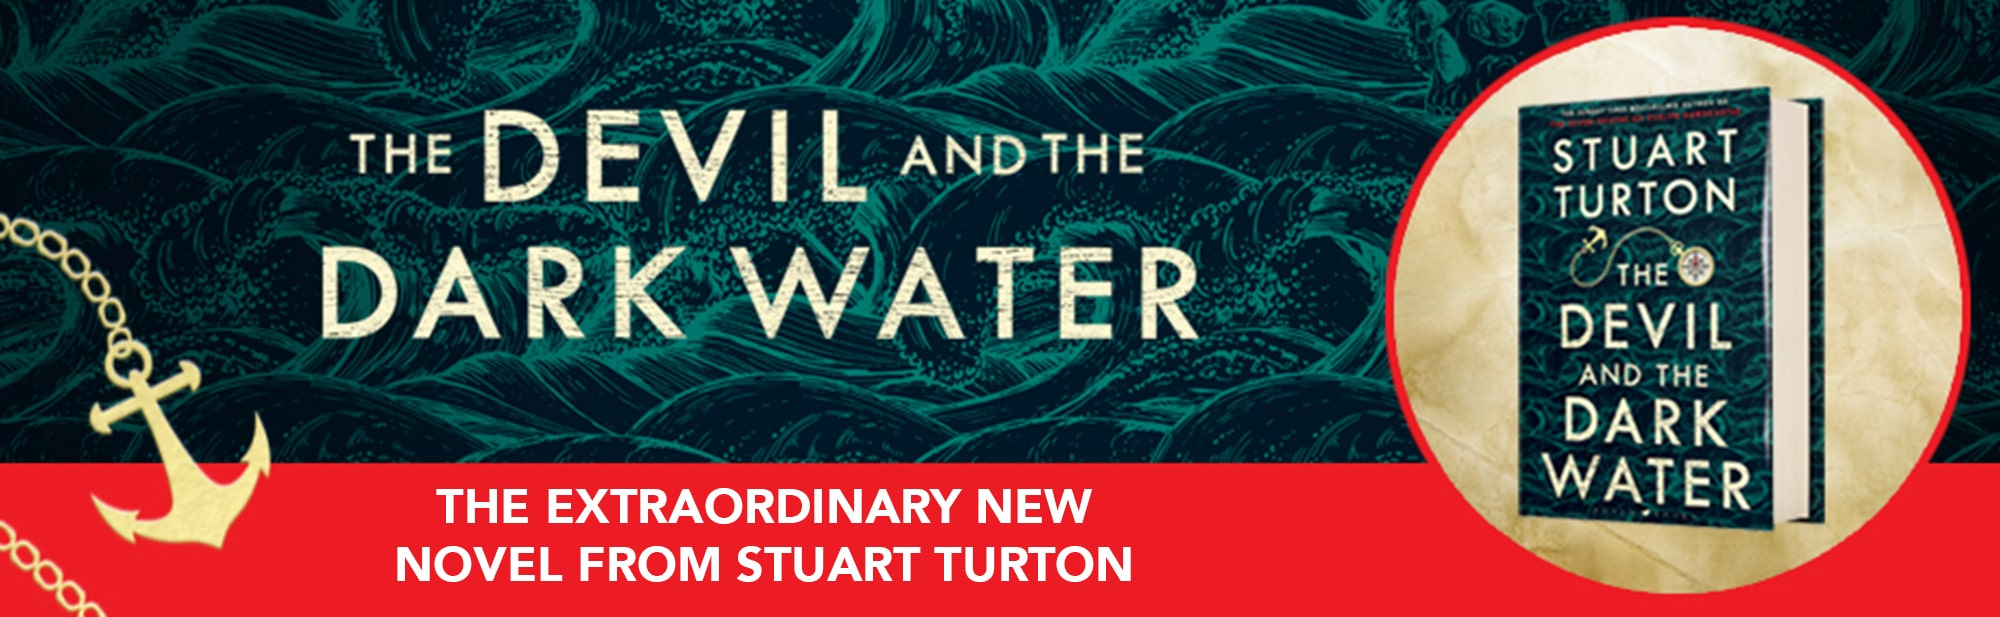 NOV 2020 The Devil and the Dark Water